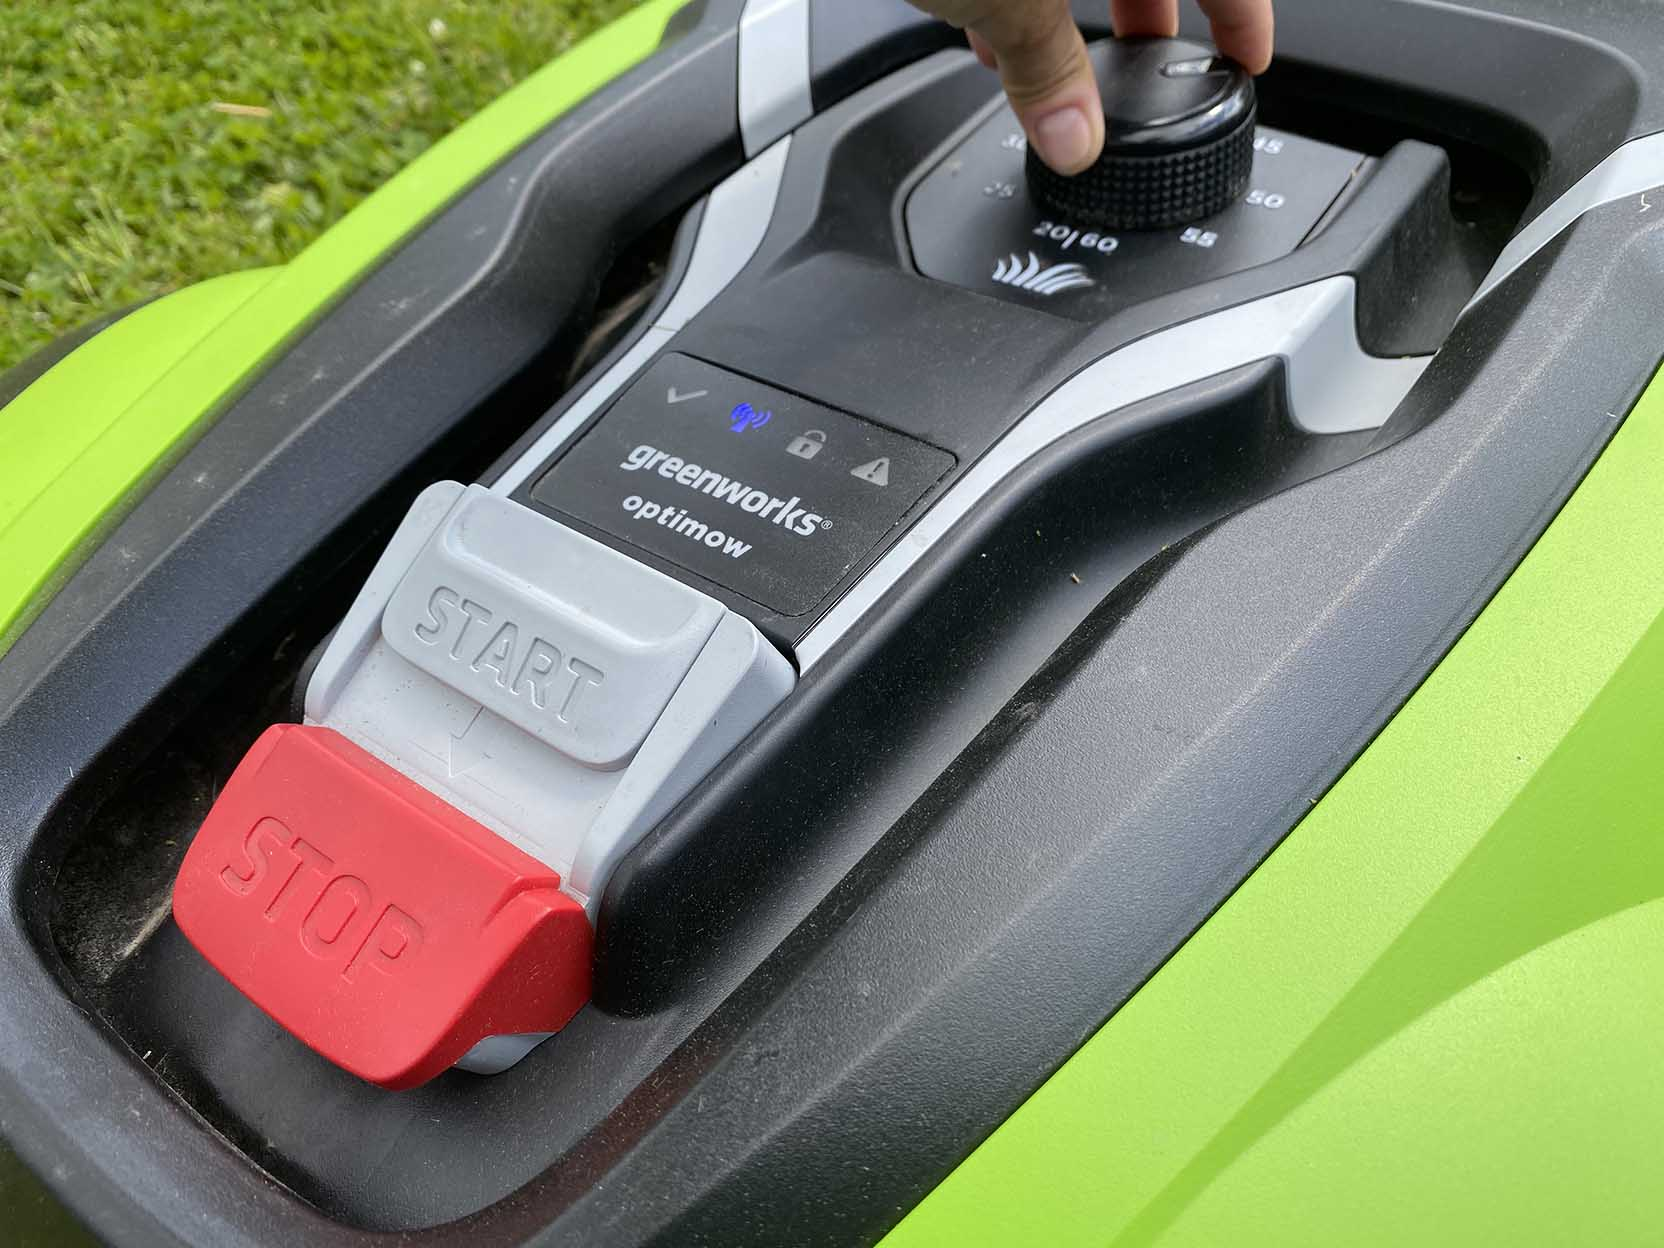 The GreenWorks Optimow 10 has no display, but you can undo the chassis and then wash off the robotic lawn mower